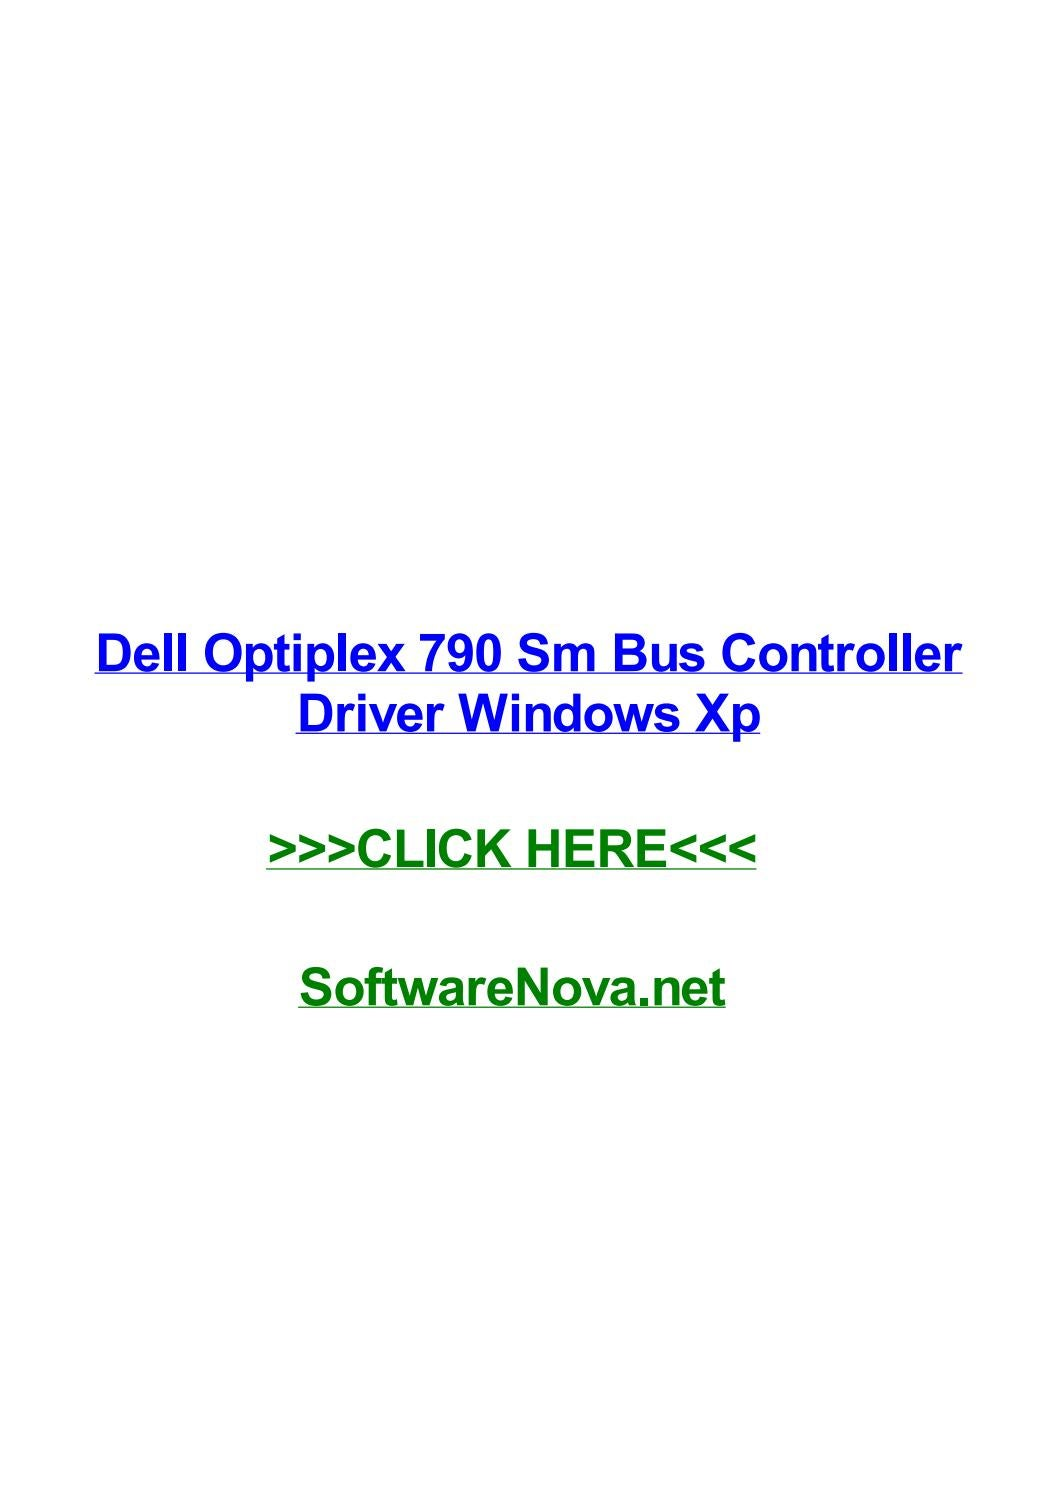 Dell optiplex 790 ethernet controller driver download tronic-zips.